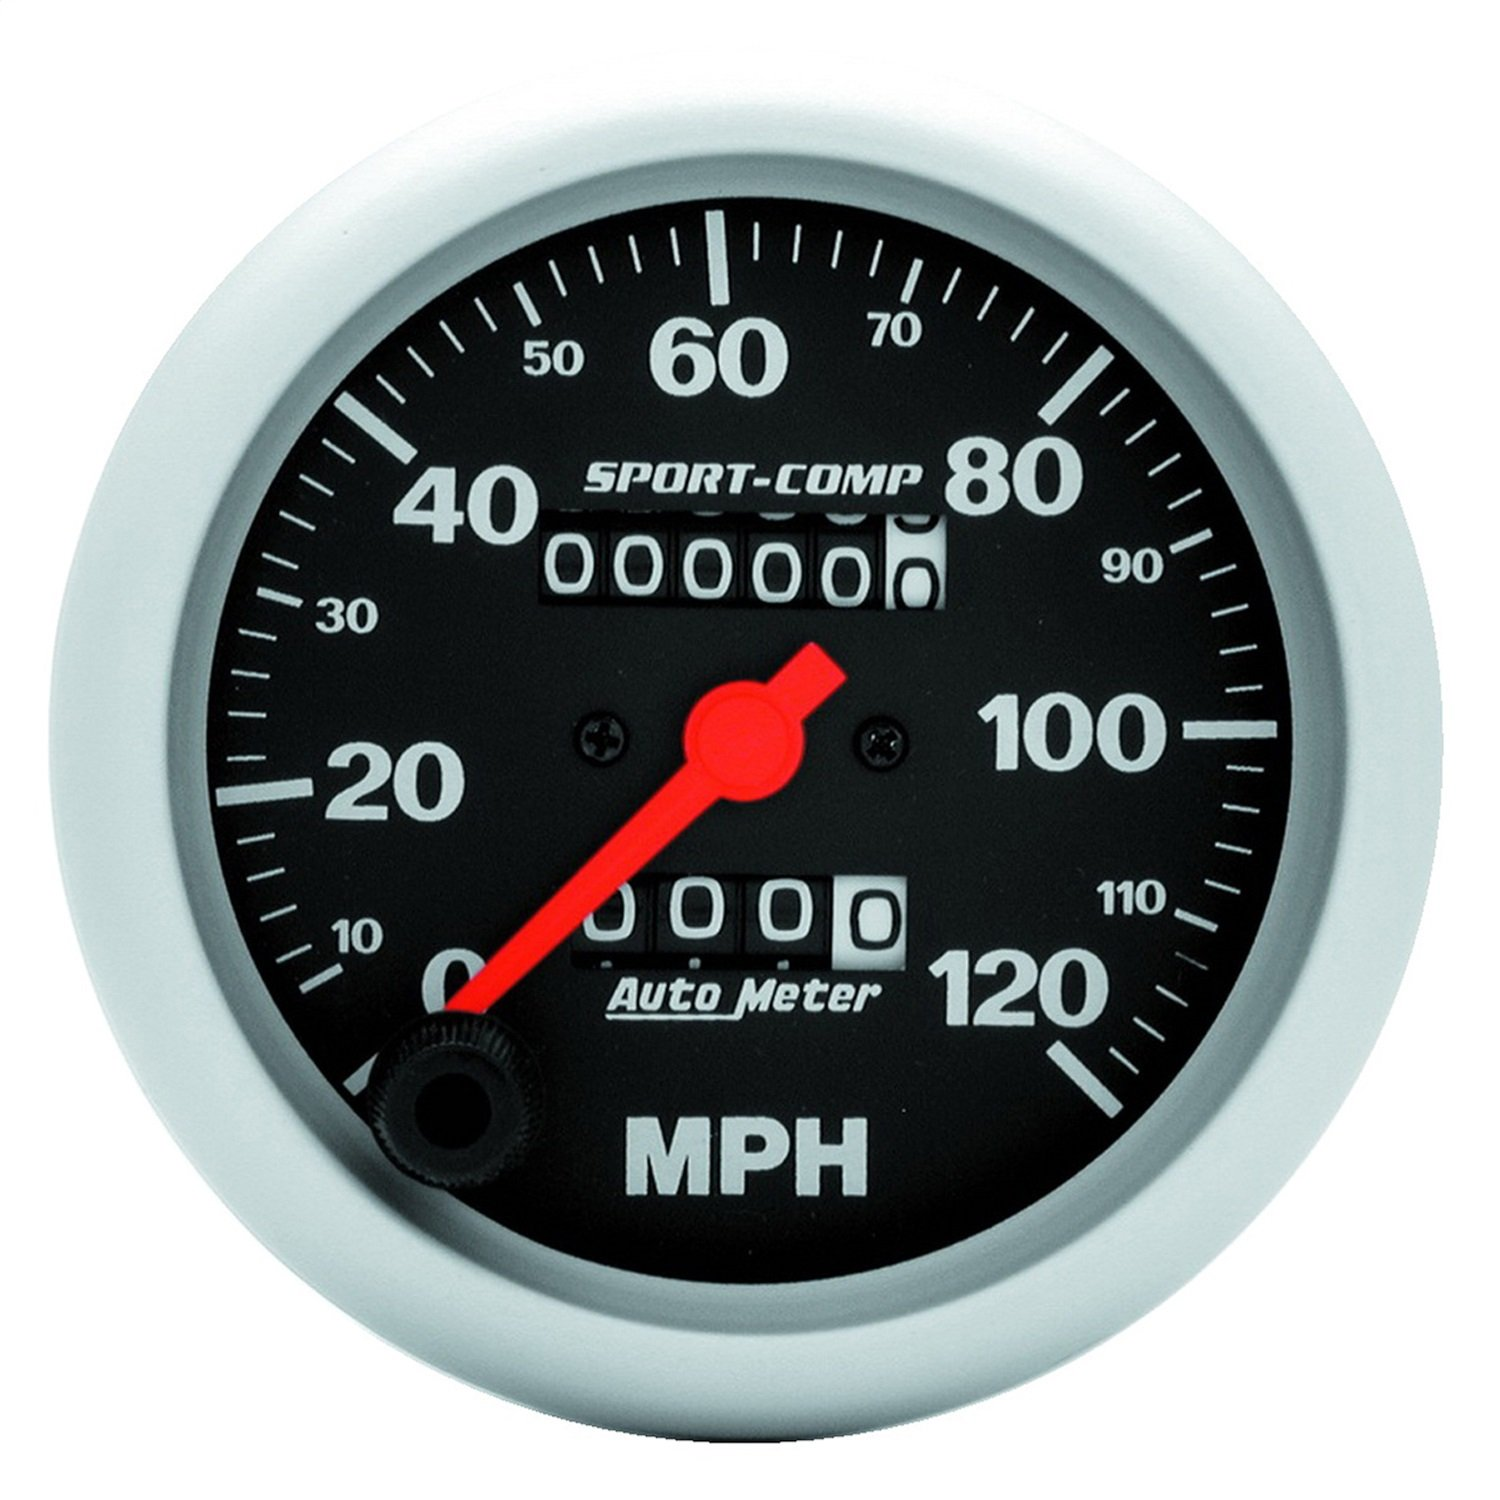 Auto Meter 3992 Sport-Comp In-Dash Mechanical Speedometer by Auto Meter